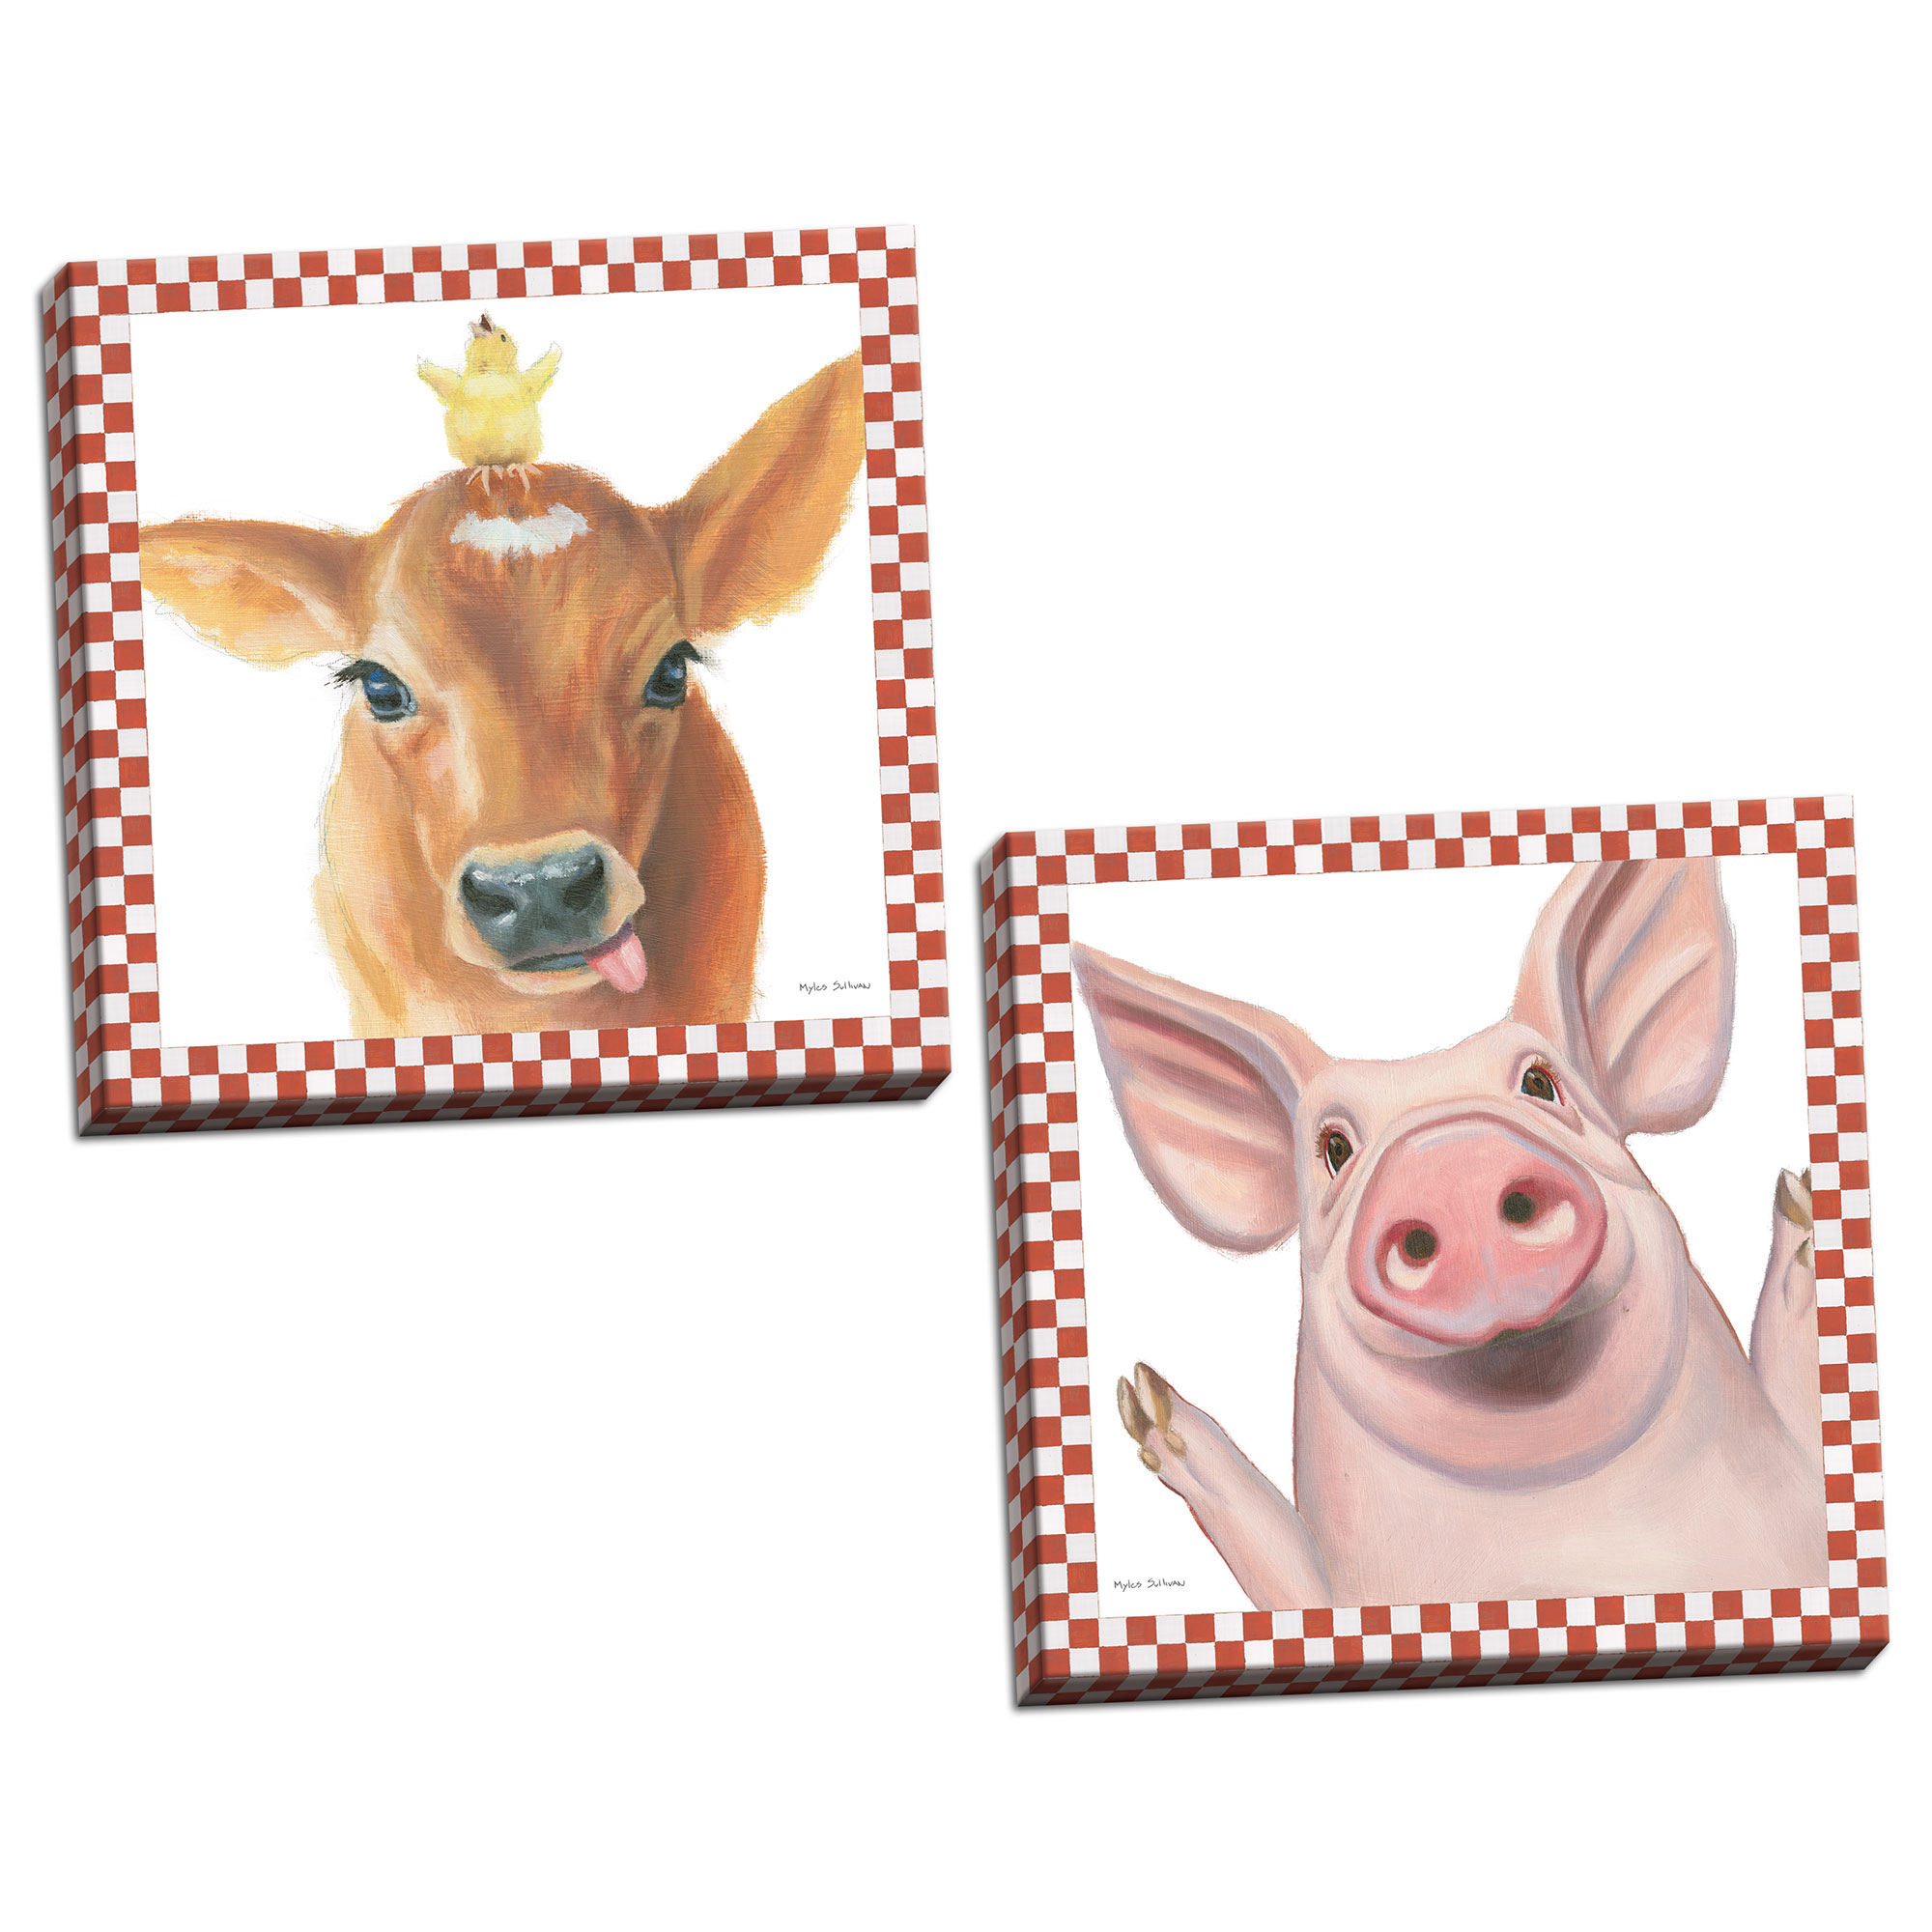 Gango Home Decor Contemporary Farm Friends III & IV by Myles Sullivan (Ready to Hang); Two 16x16in Hand-Stretched Canvases